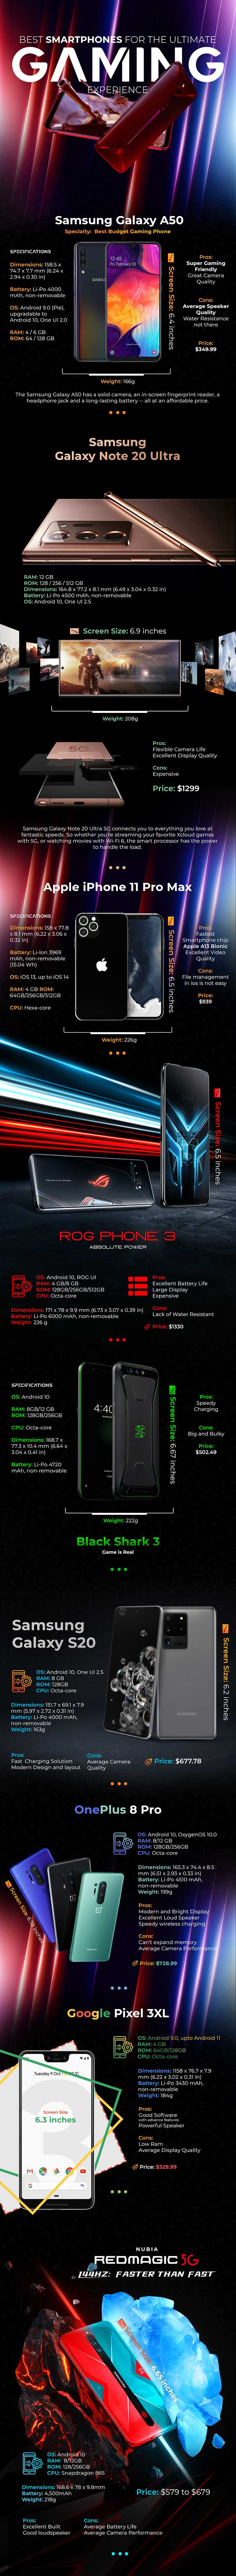 The Best Gaming Smartphones Infographic